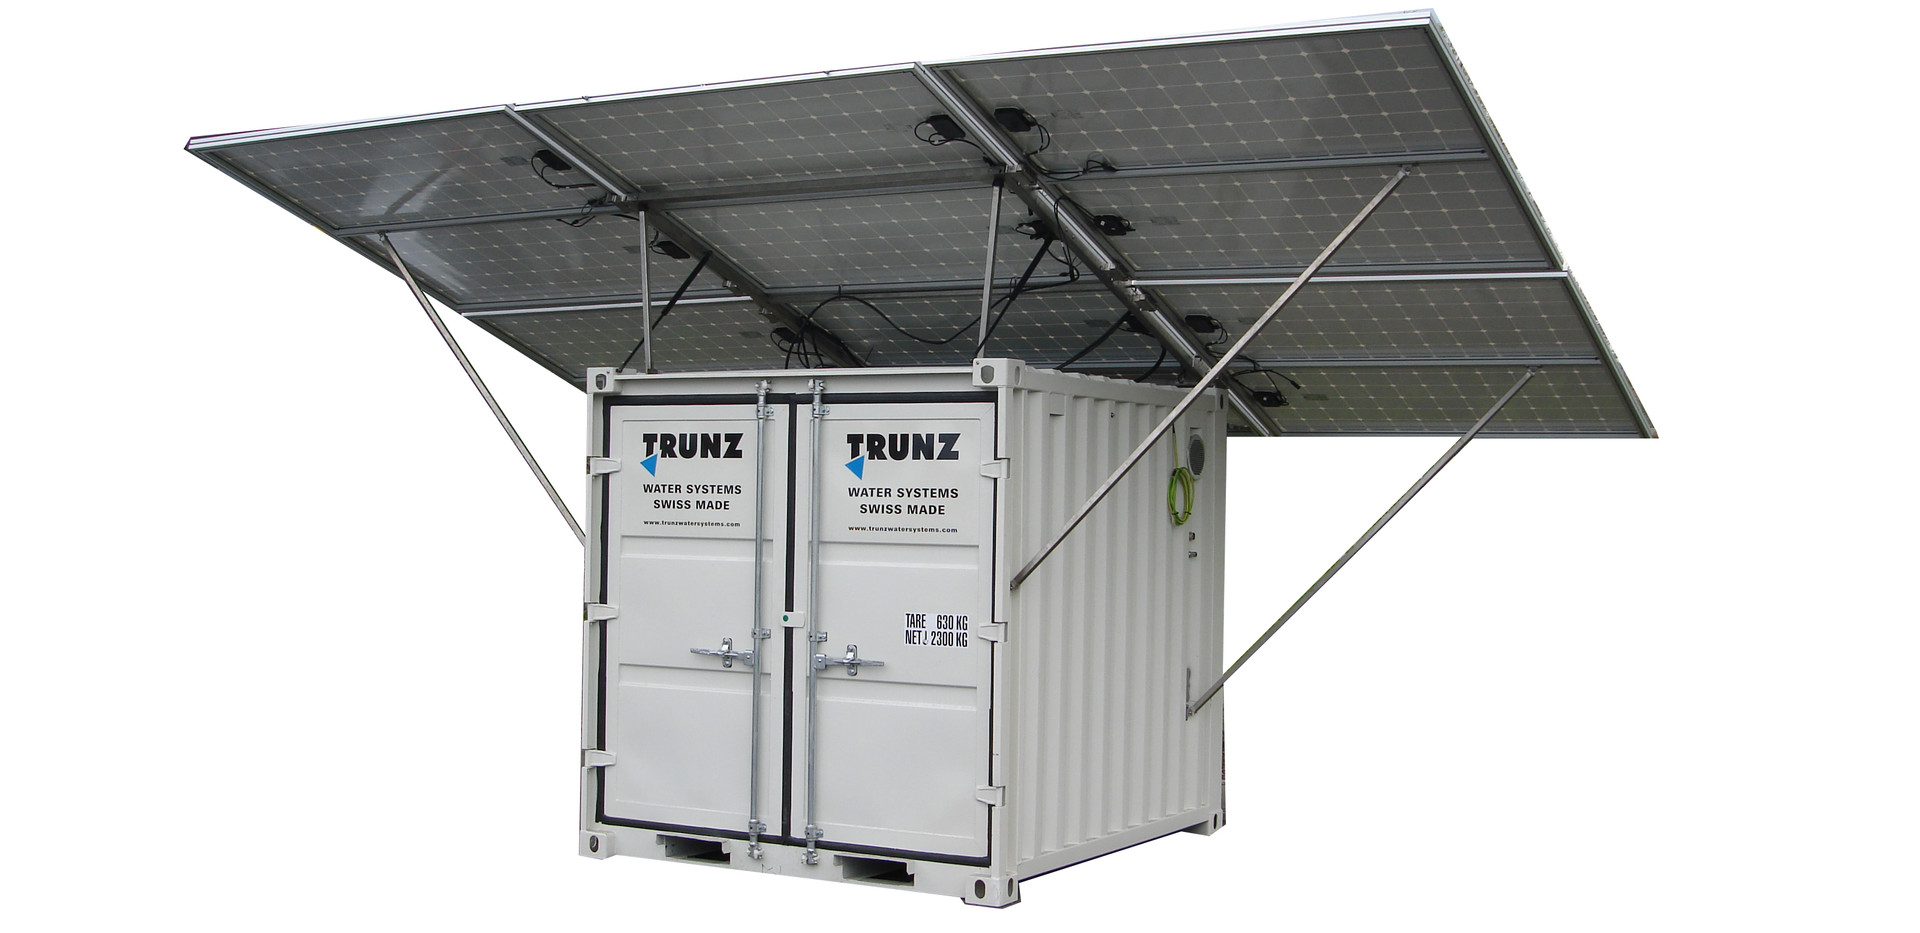 Trunz the best watermakers for disaster relief & remote communities